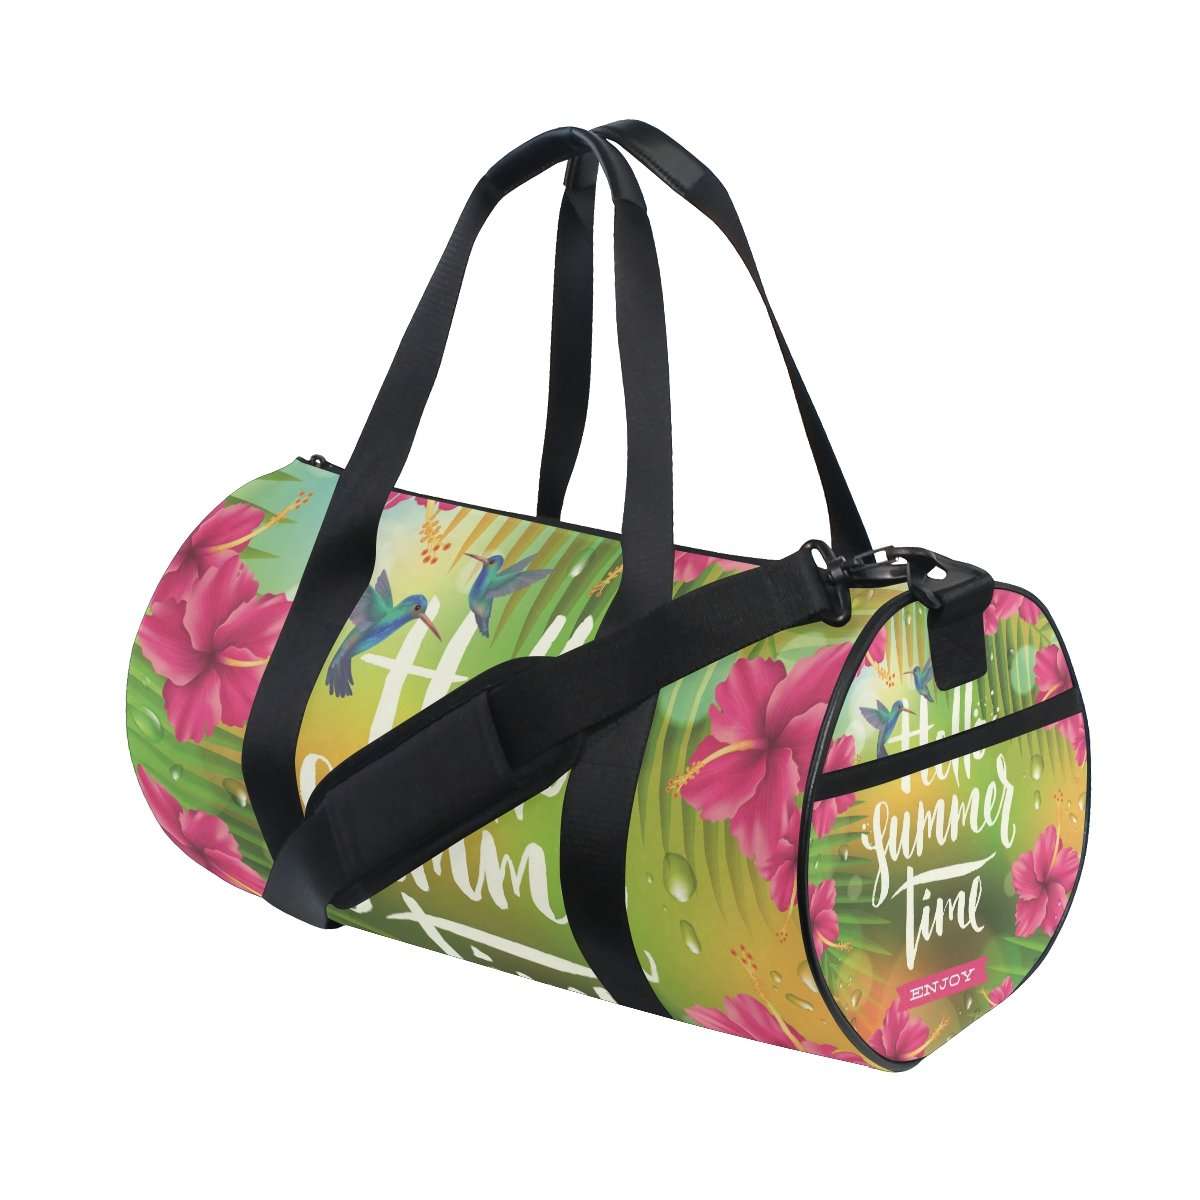 Gym Duffel Bag Summer Hummingbird Hibiscu Sports Lightweight Canvas Travel Luggage Bag